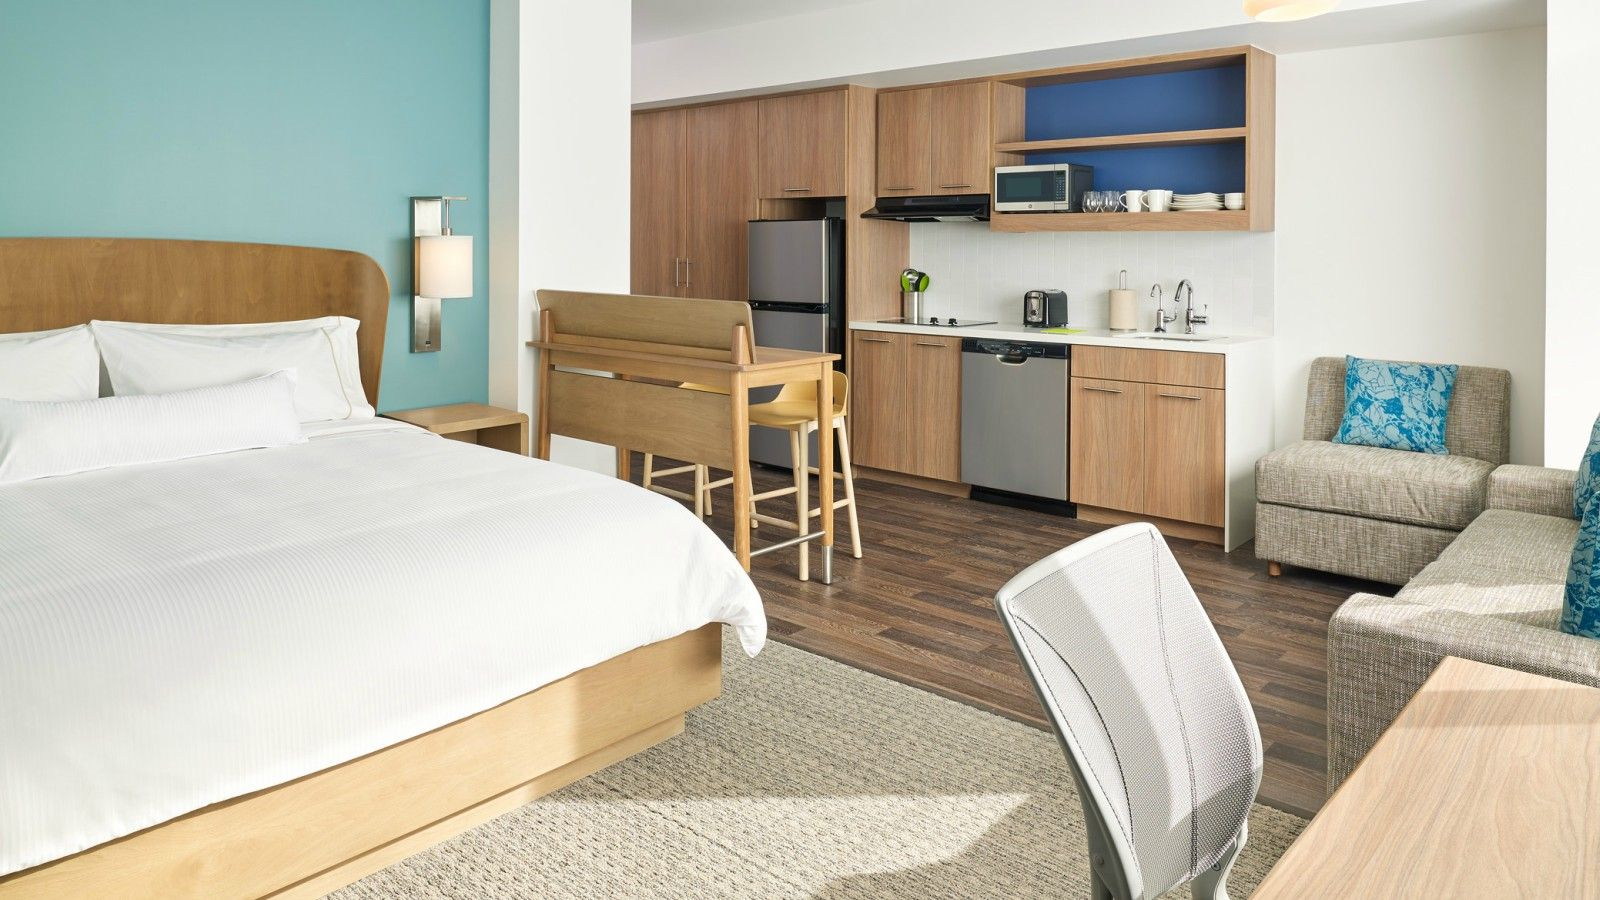 Calgary Airport extended stay hotel